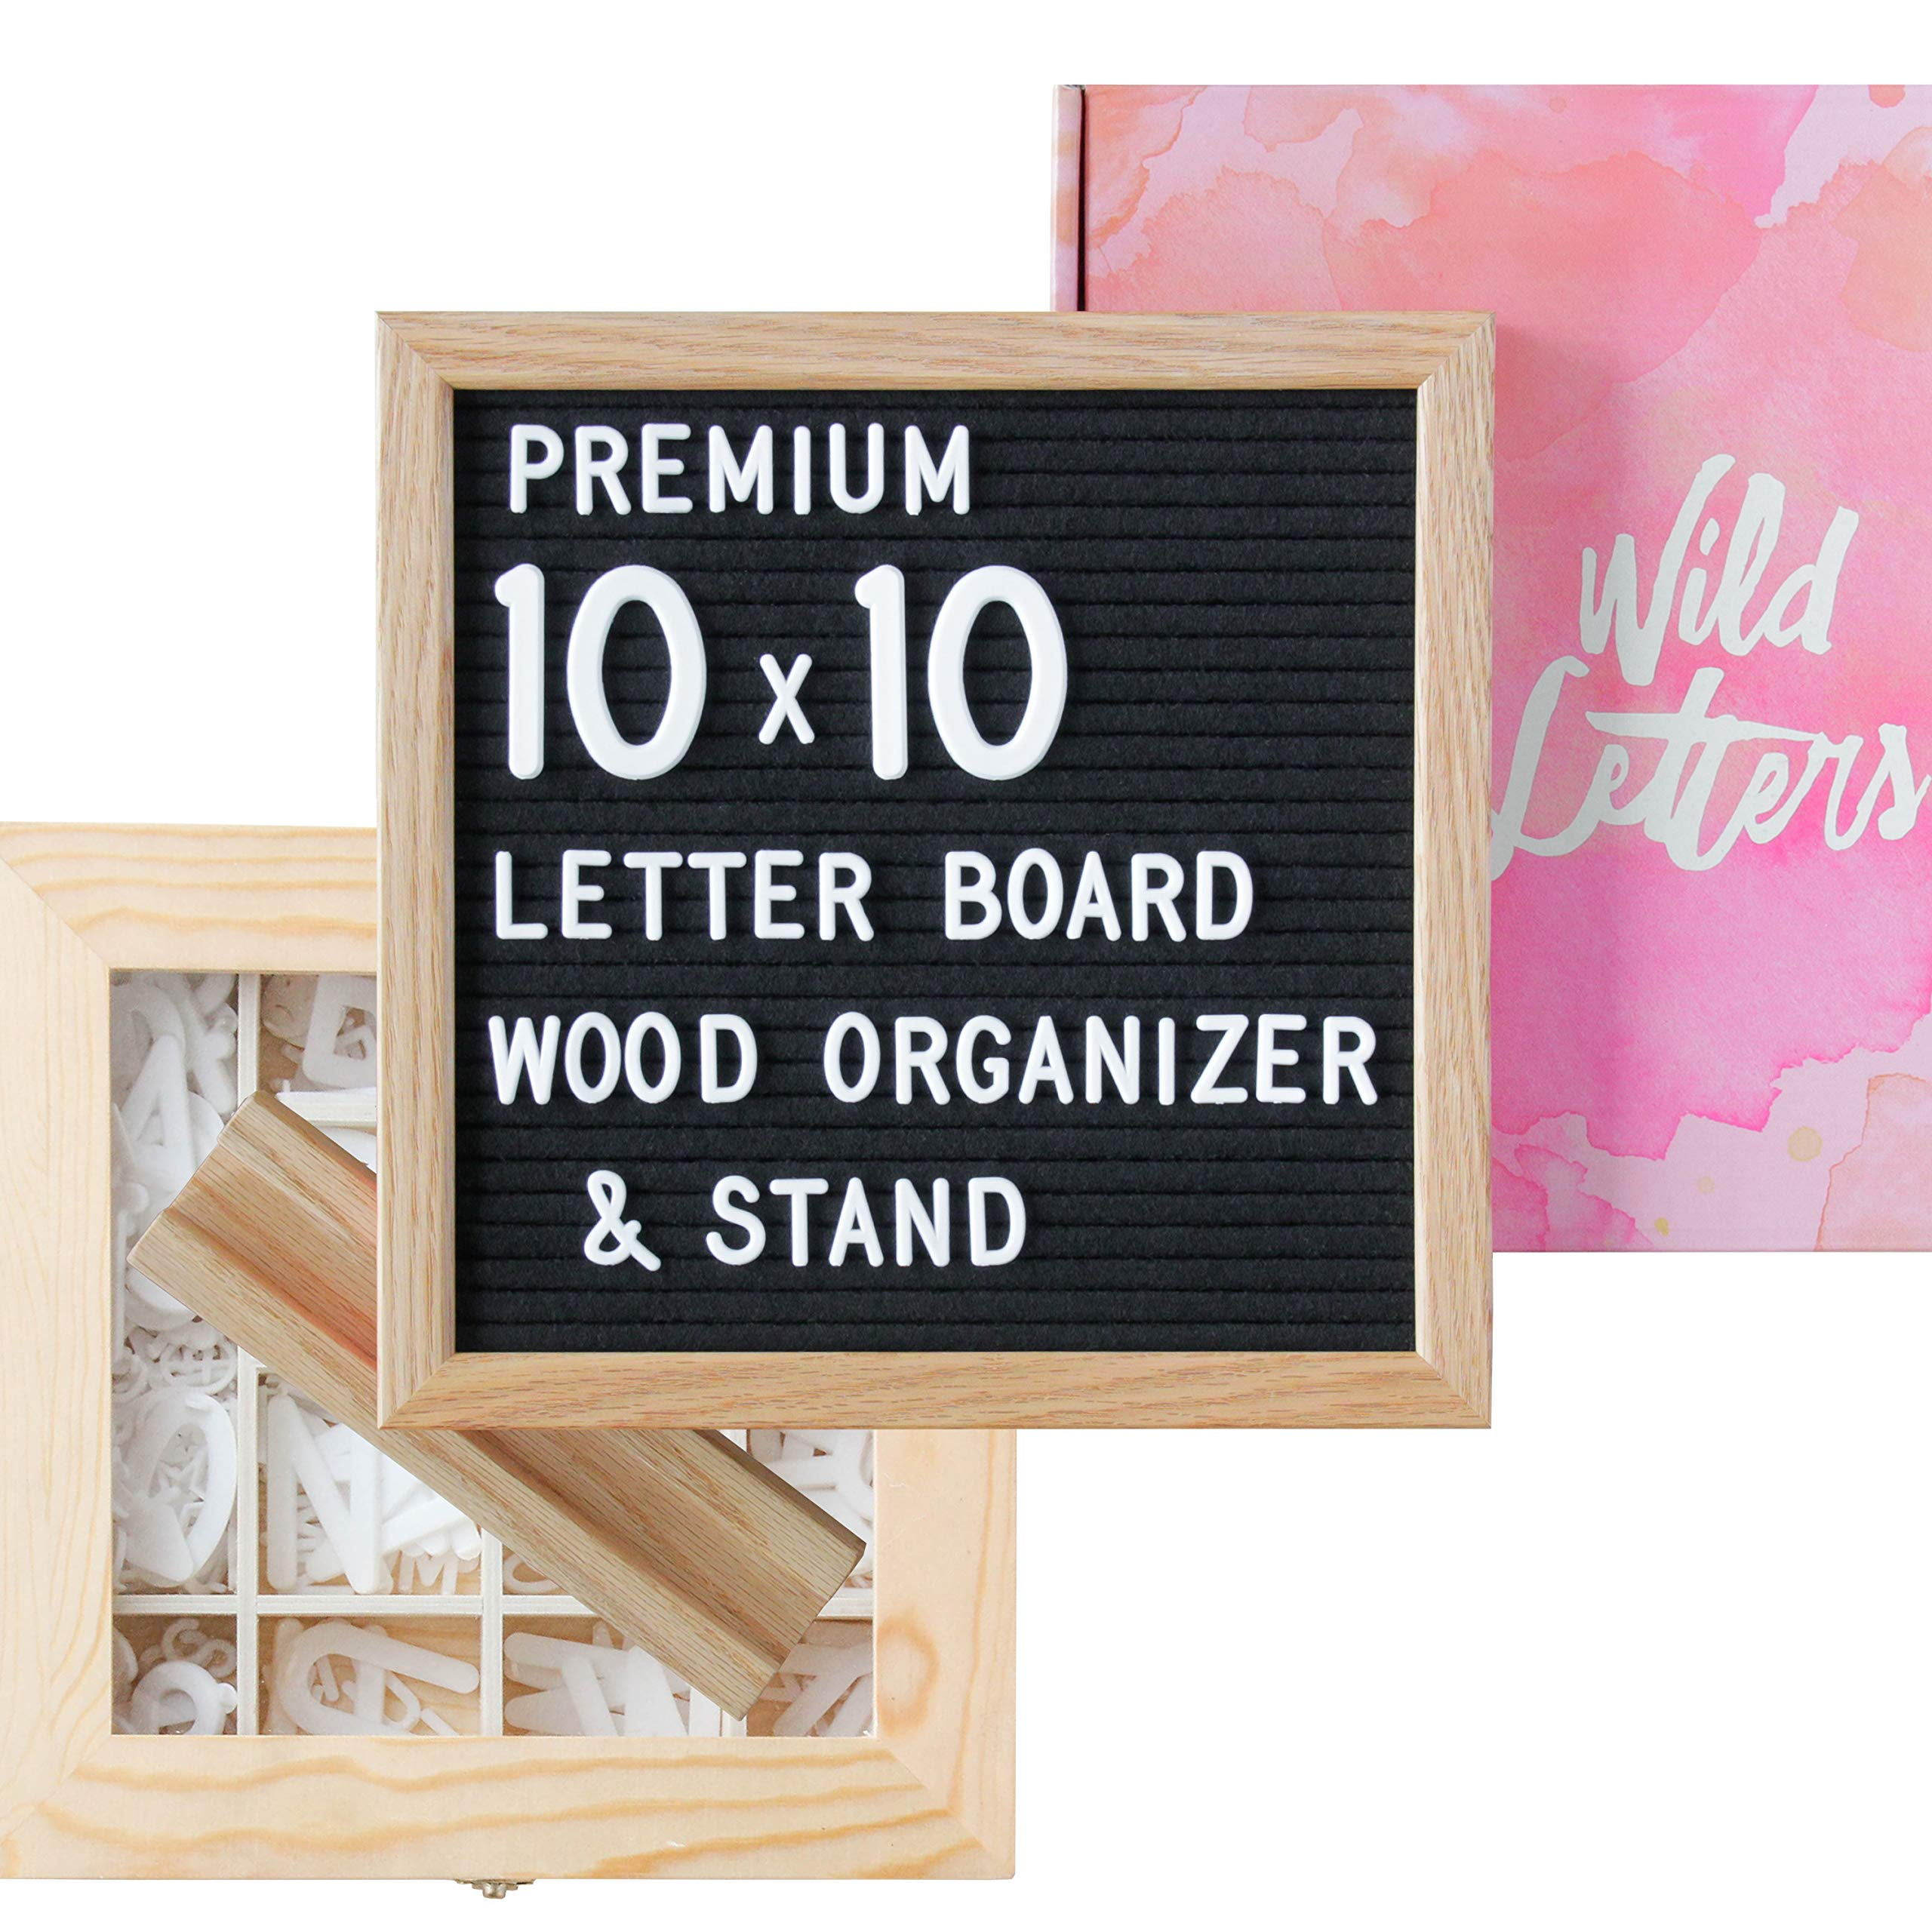 Wild Letters Letter Board 10x10 | +Letter Organizer +Pre-Cut Letters +Stand | (Black) Felt Letter Board,  Letter Board Letters, Felt Letter Board Accessories, Message Board with Letters, Changeable